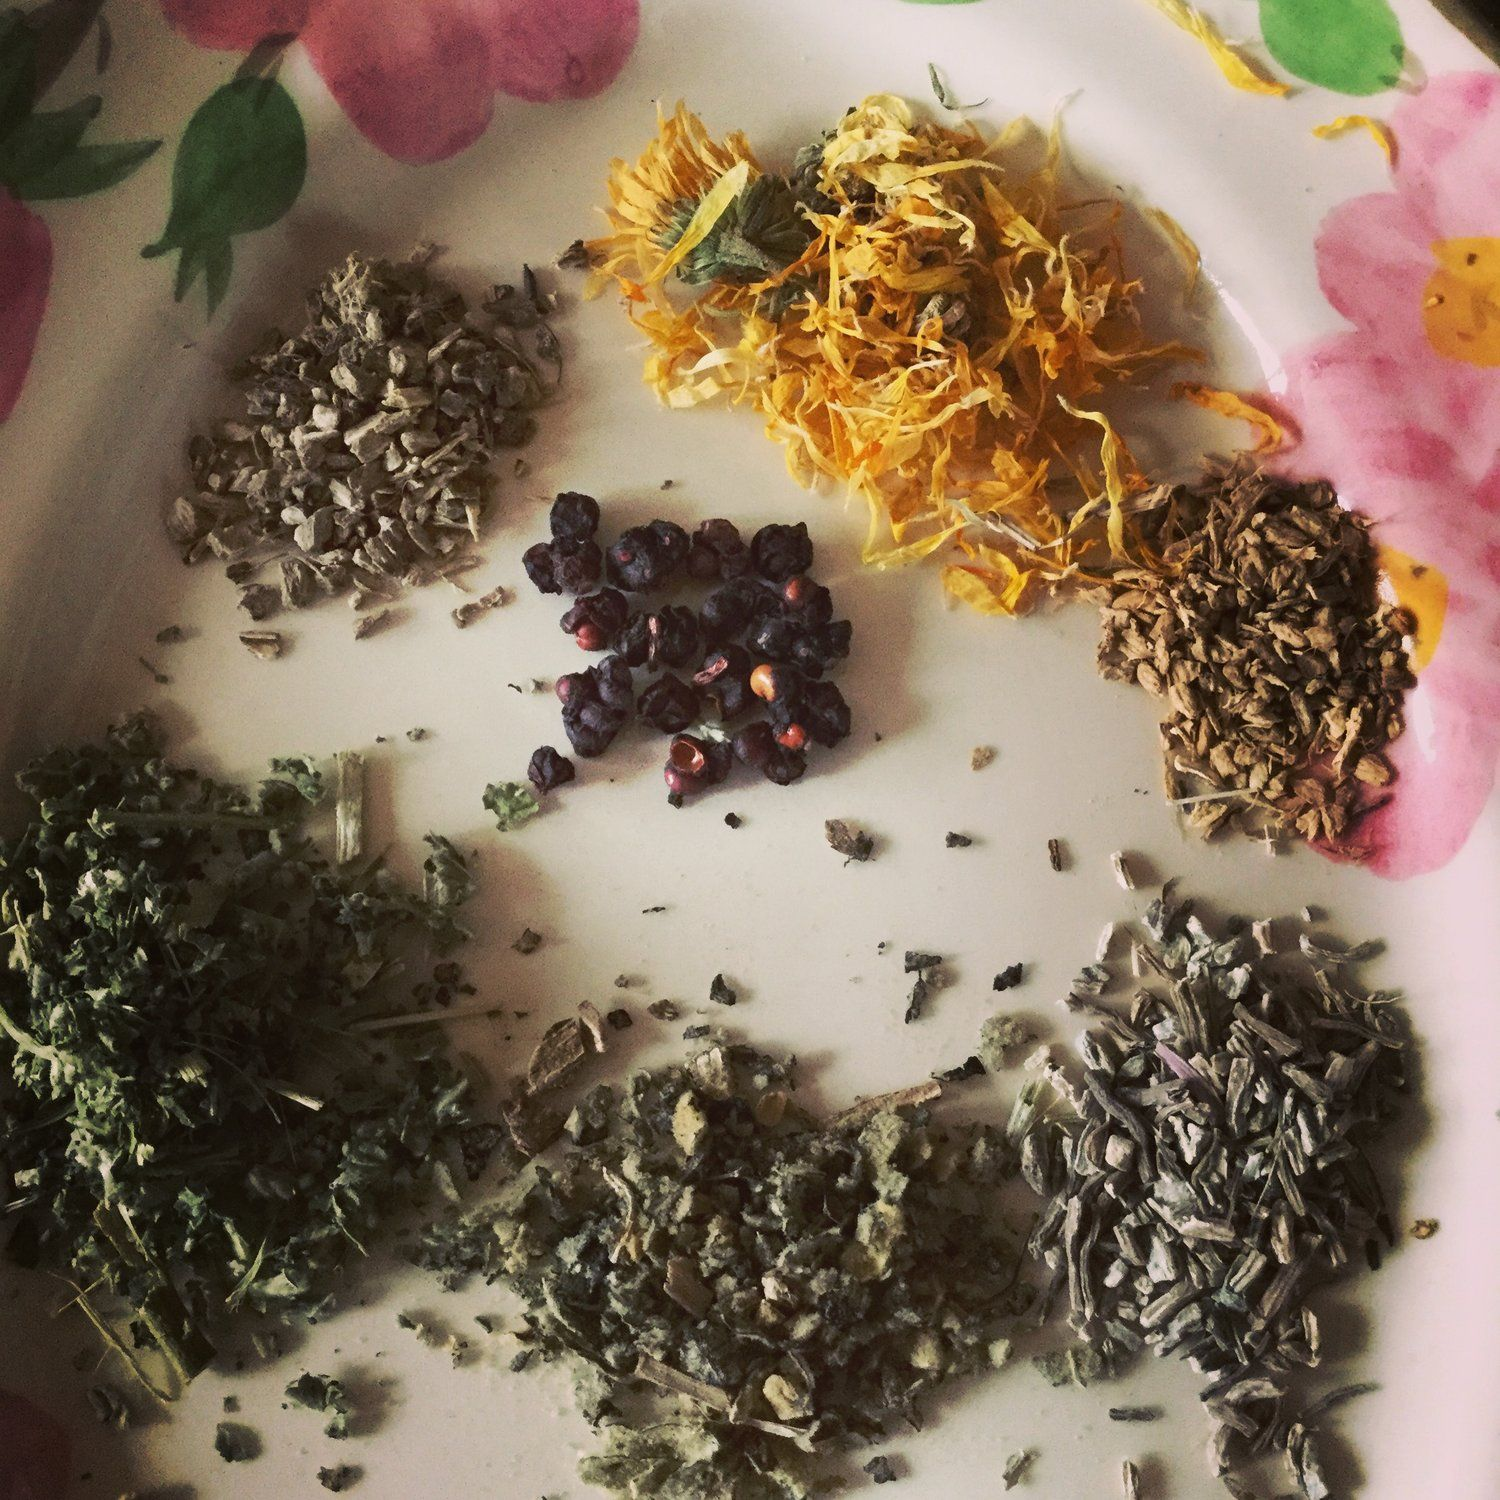 A Lung Support Tea You Must Have In Your Home Apothecary Helps